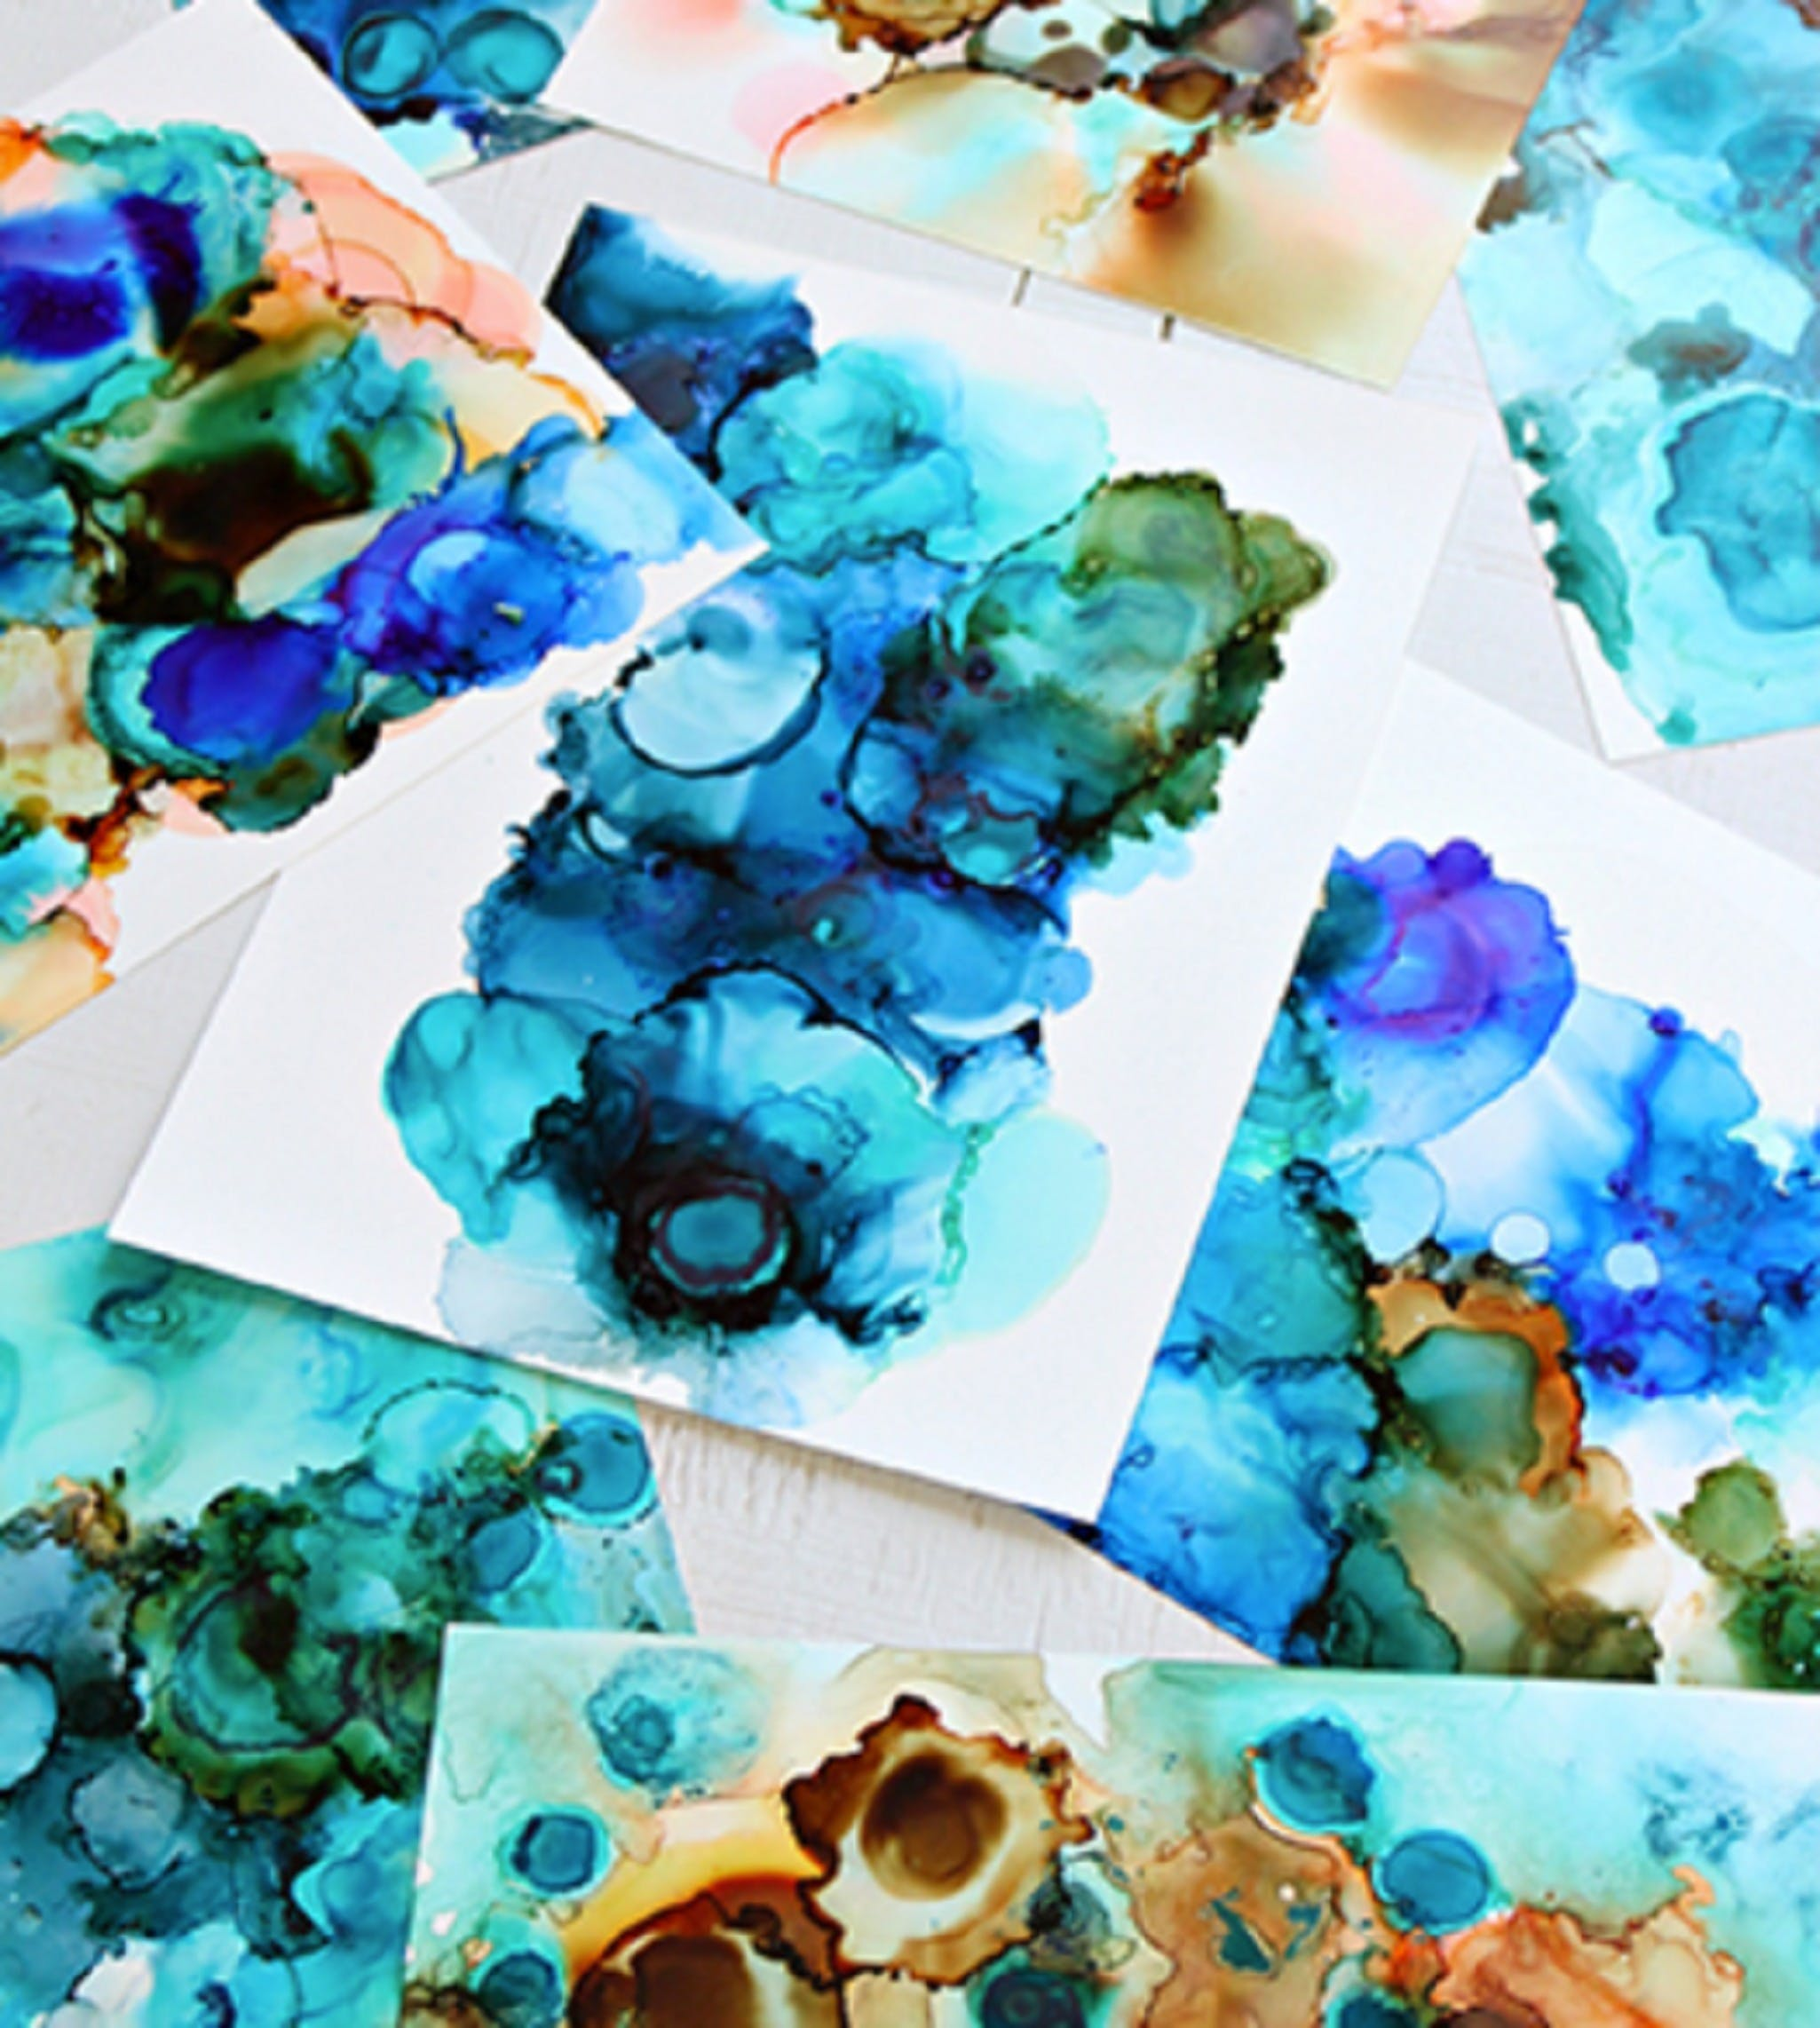 Alcohol Ink Art Class - Carnarvon Accommodation